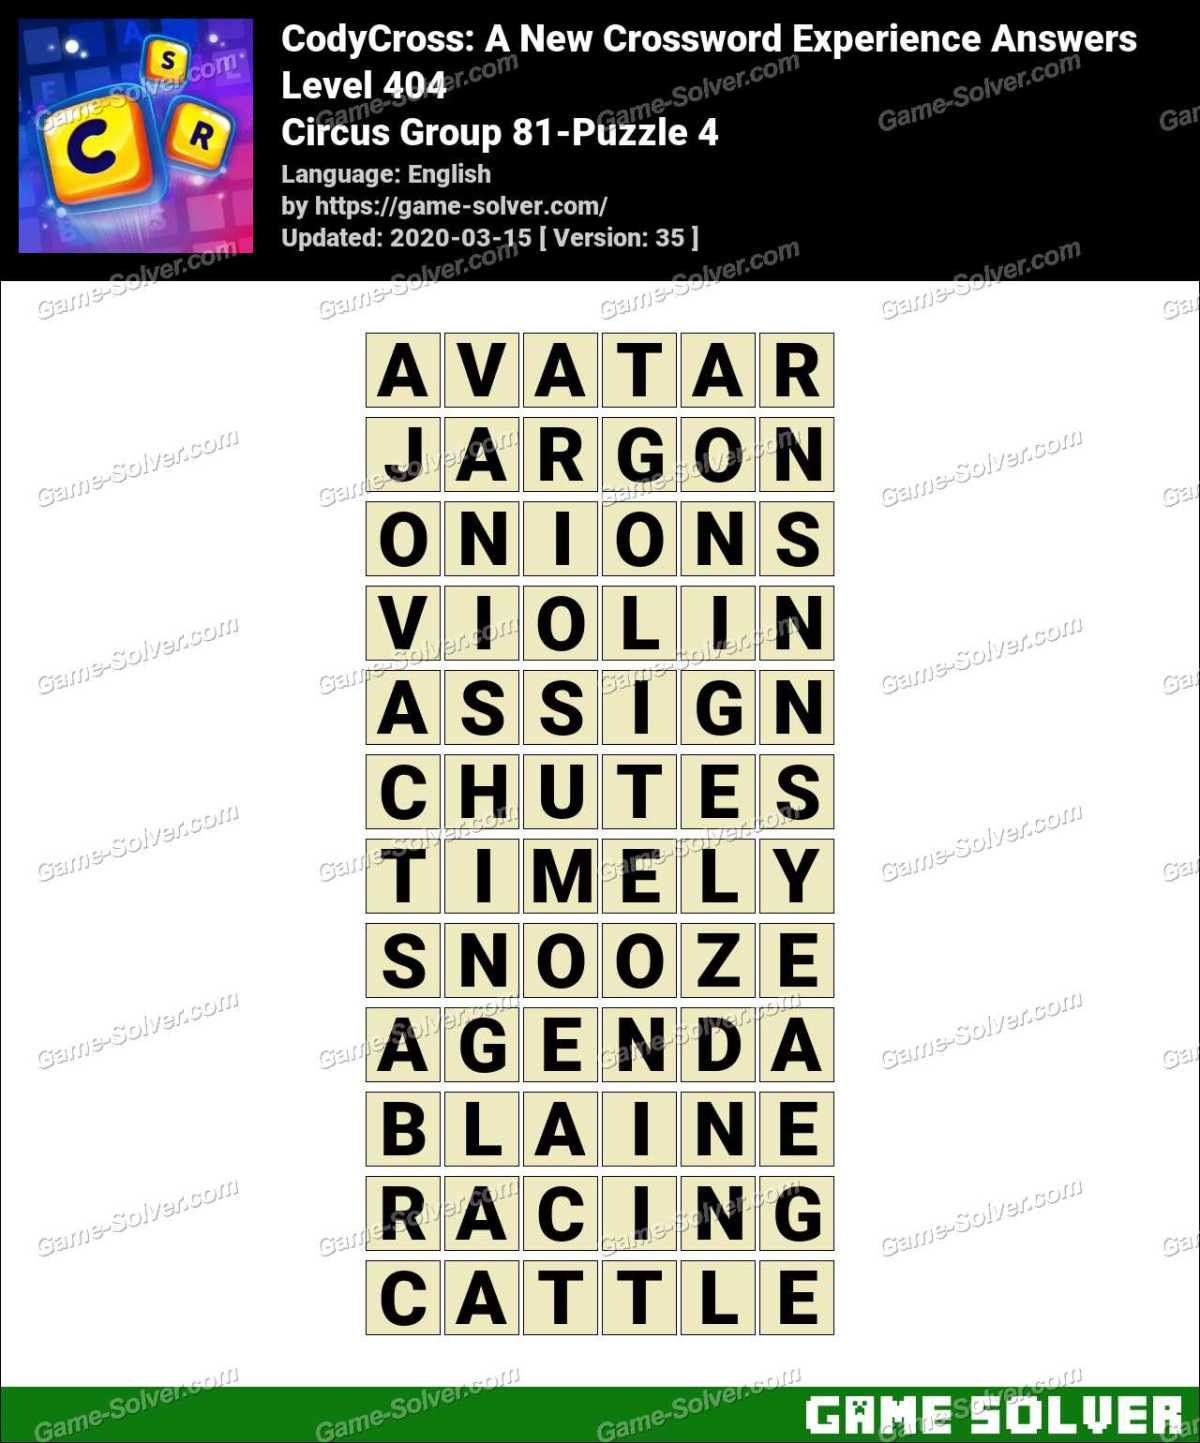 CodyCross Circus Group 81-Puzzle 4 Answers